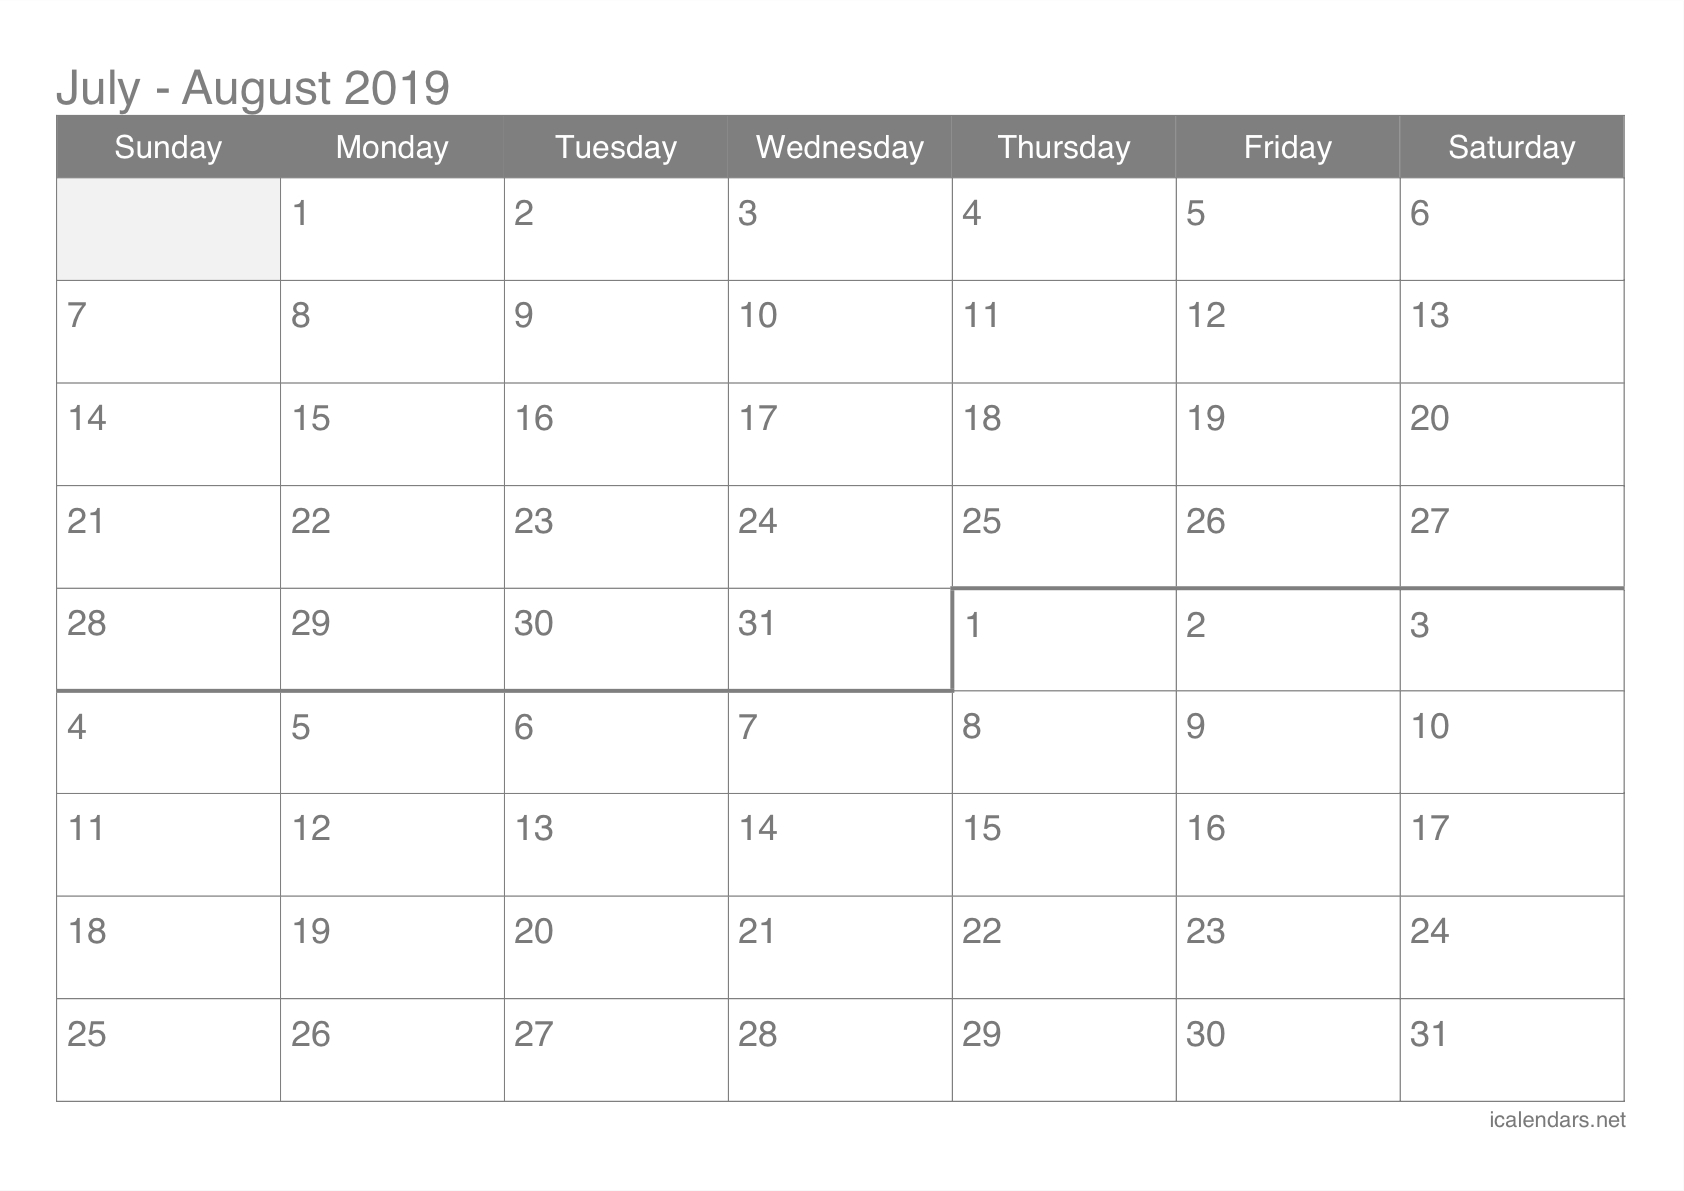 July And August 2019 Printable Calendar - Icalendars Calendar 0F 2019